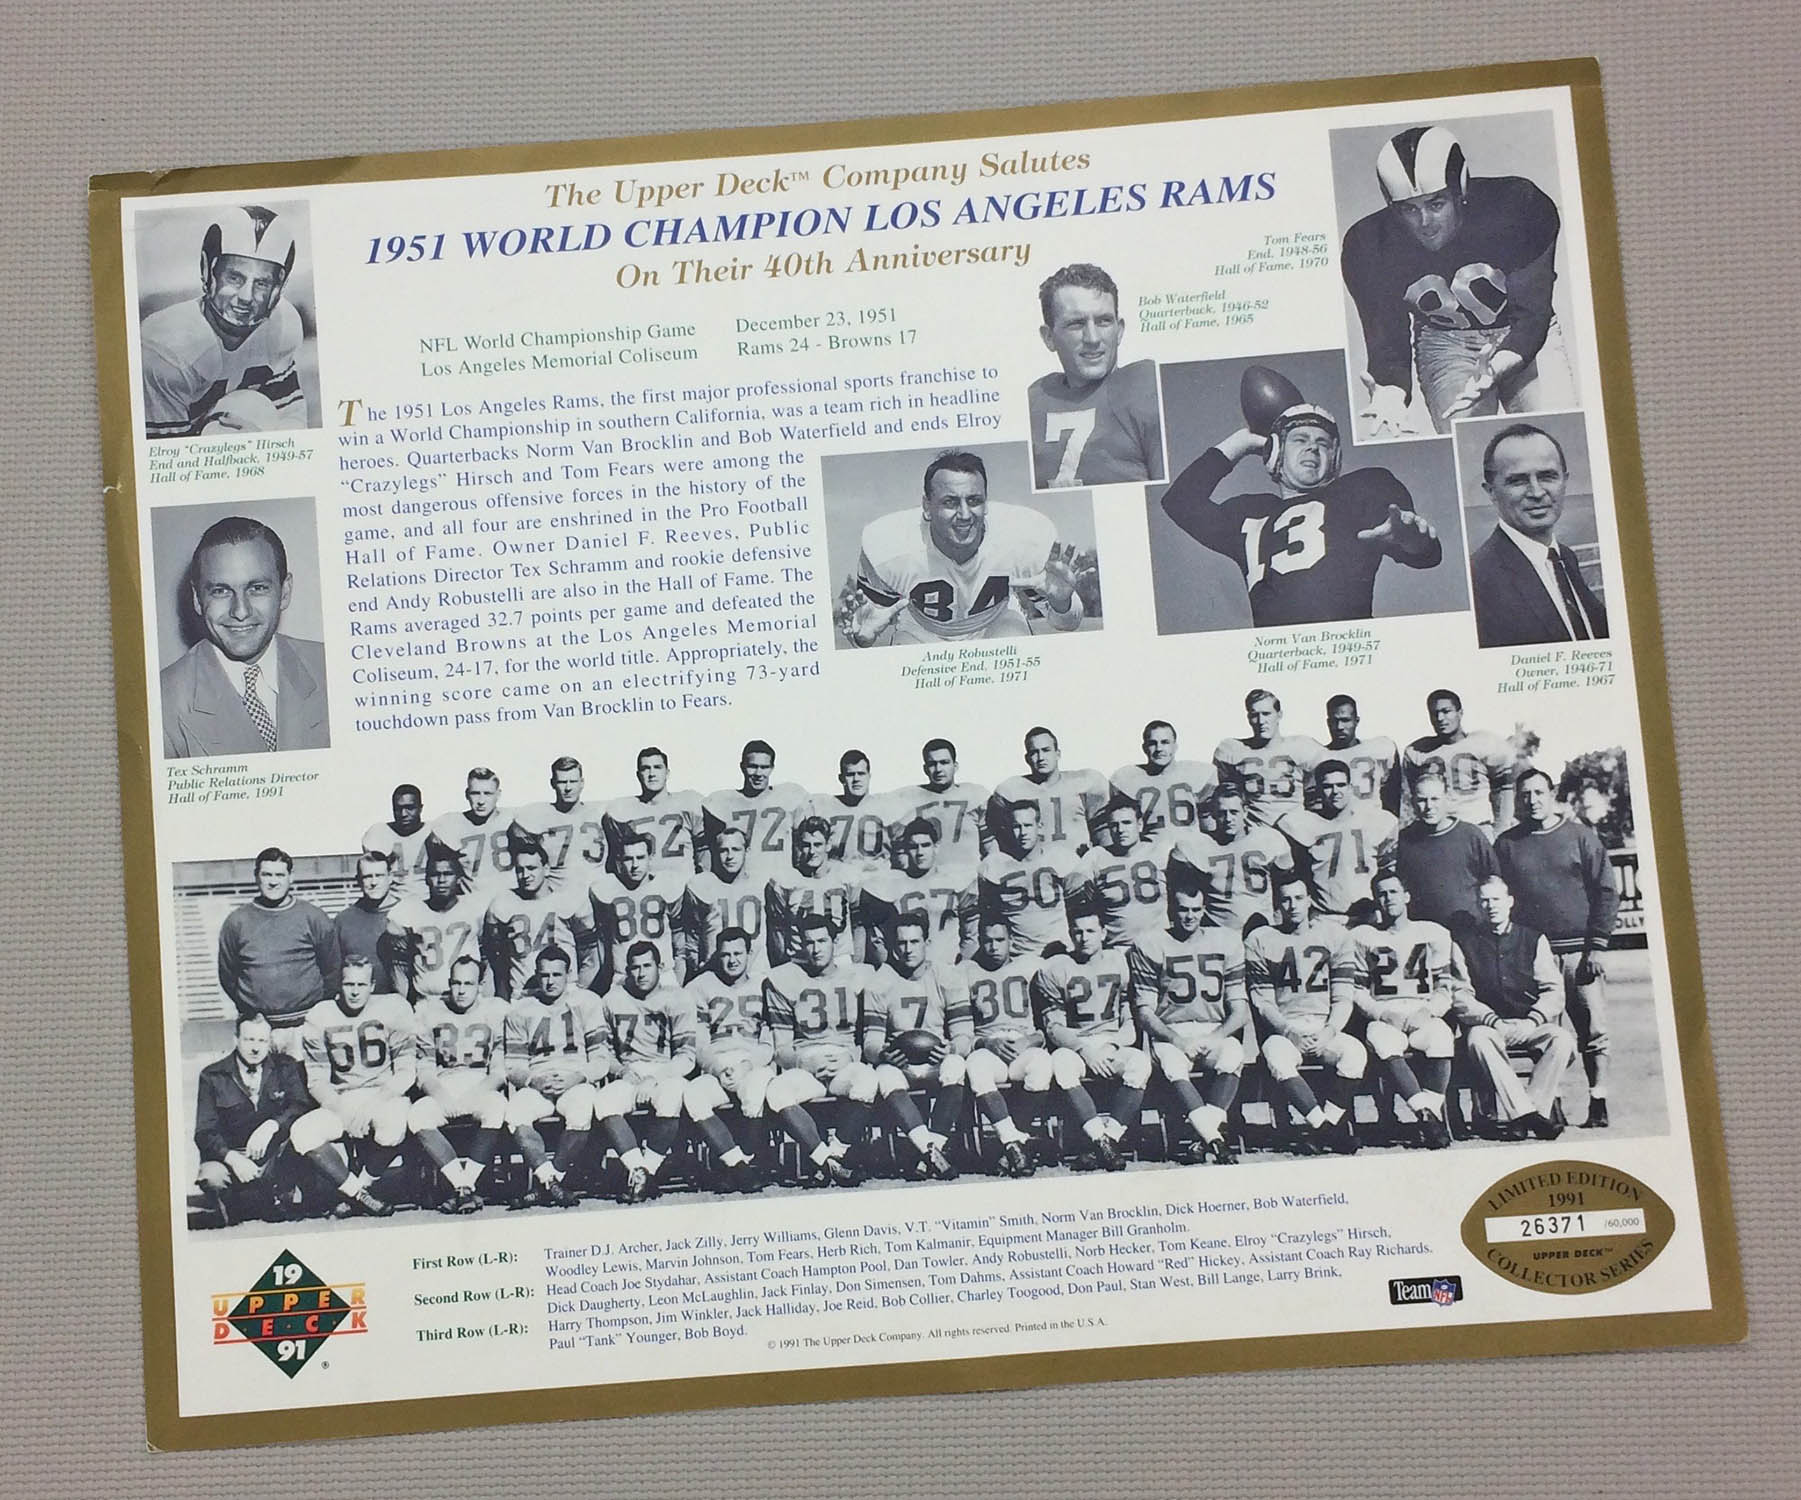 Los Angeles Rams 1951 Team Photo